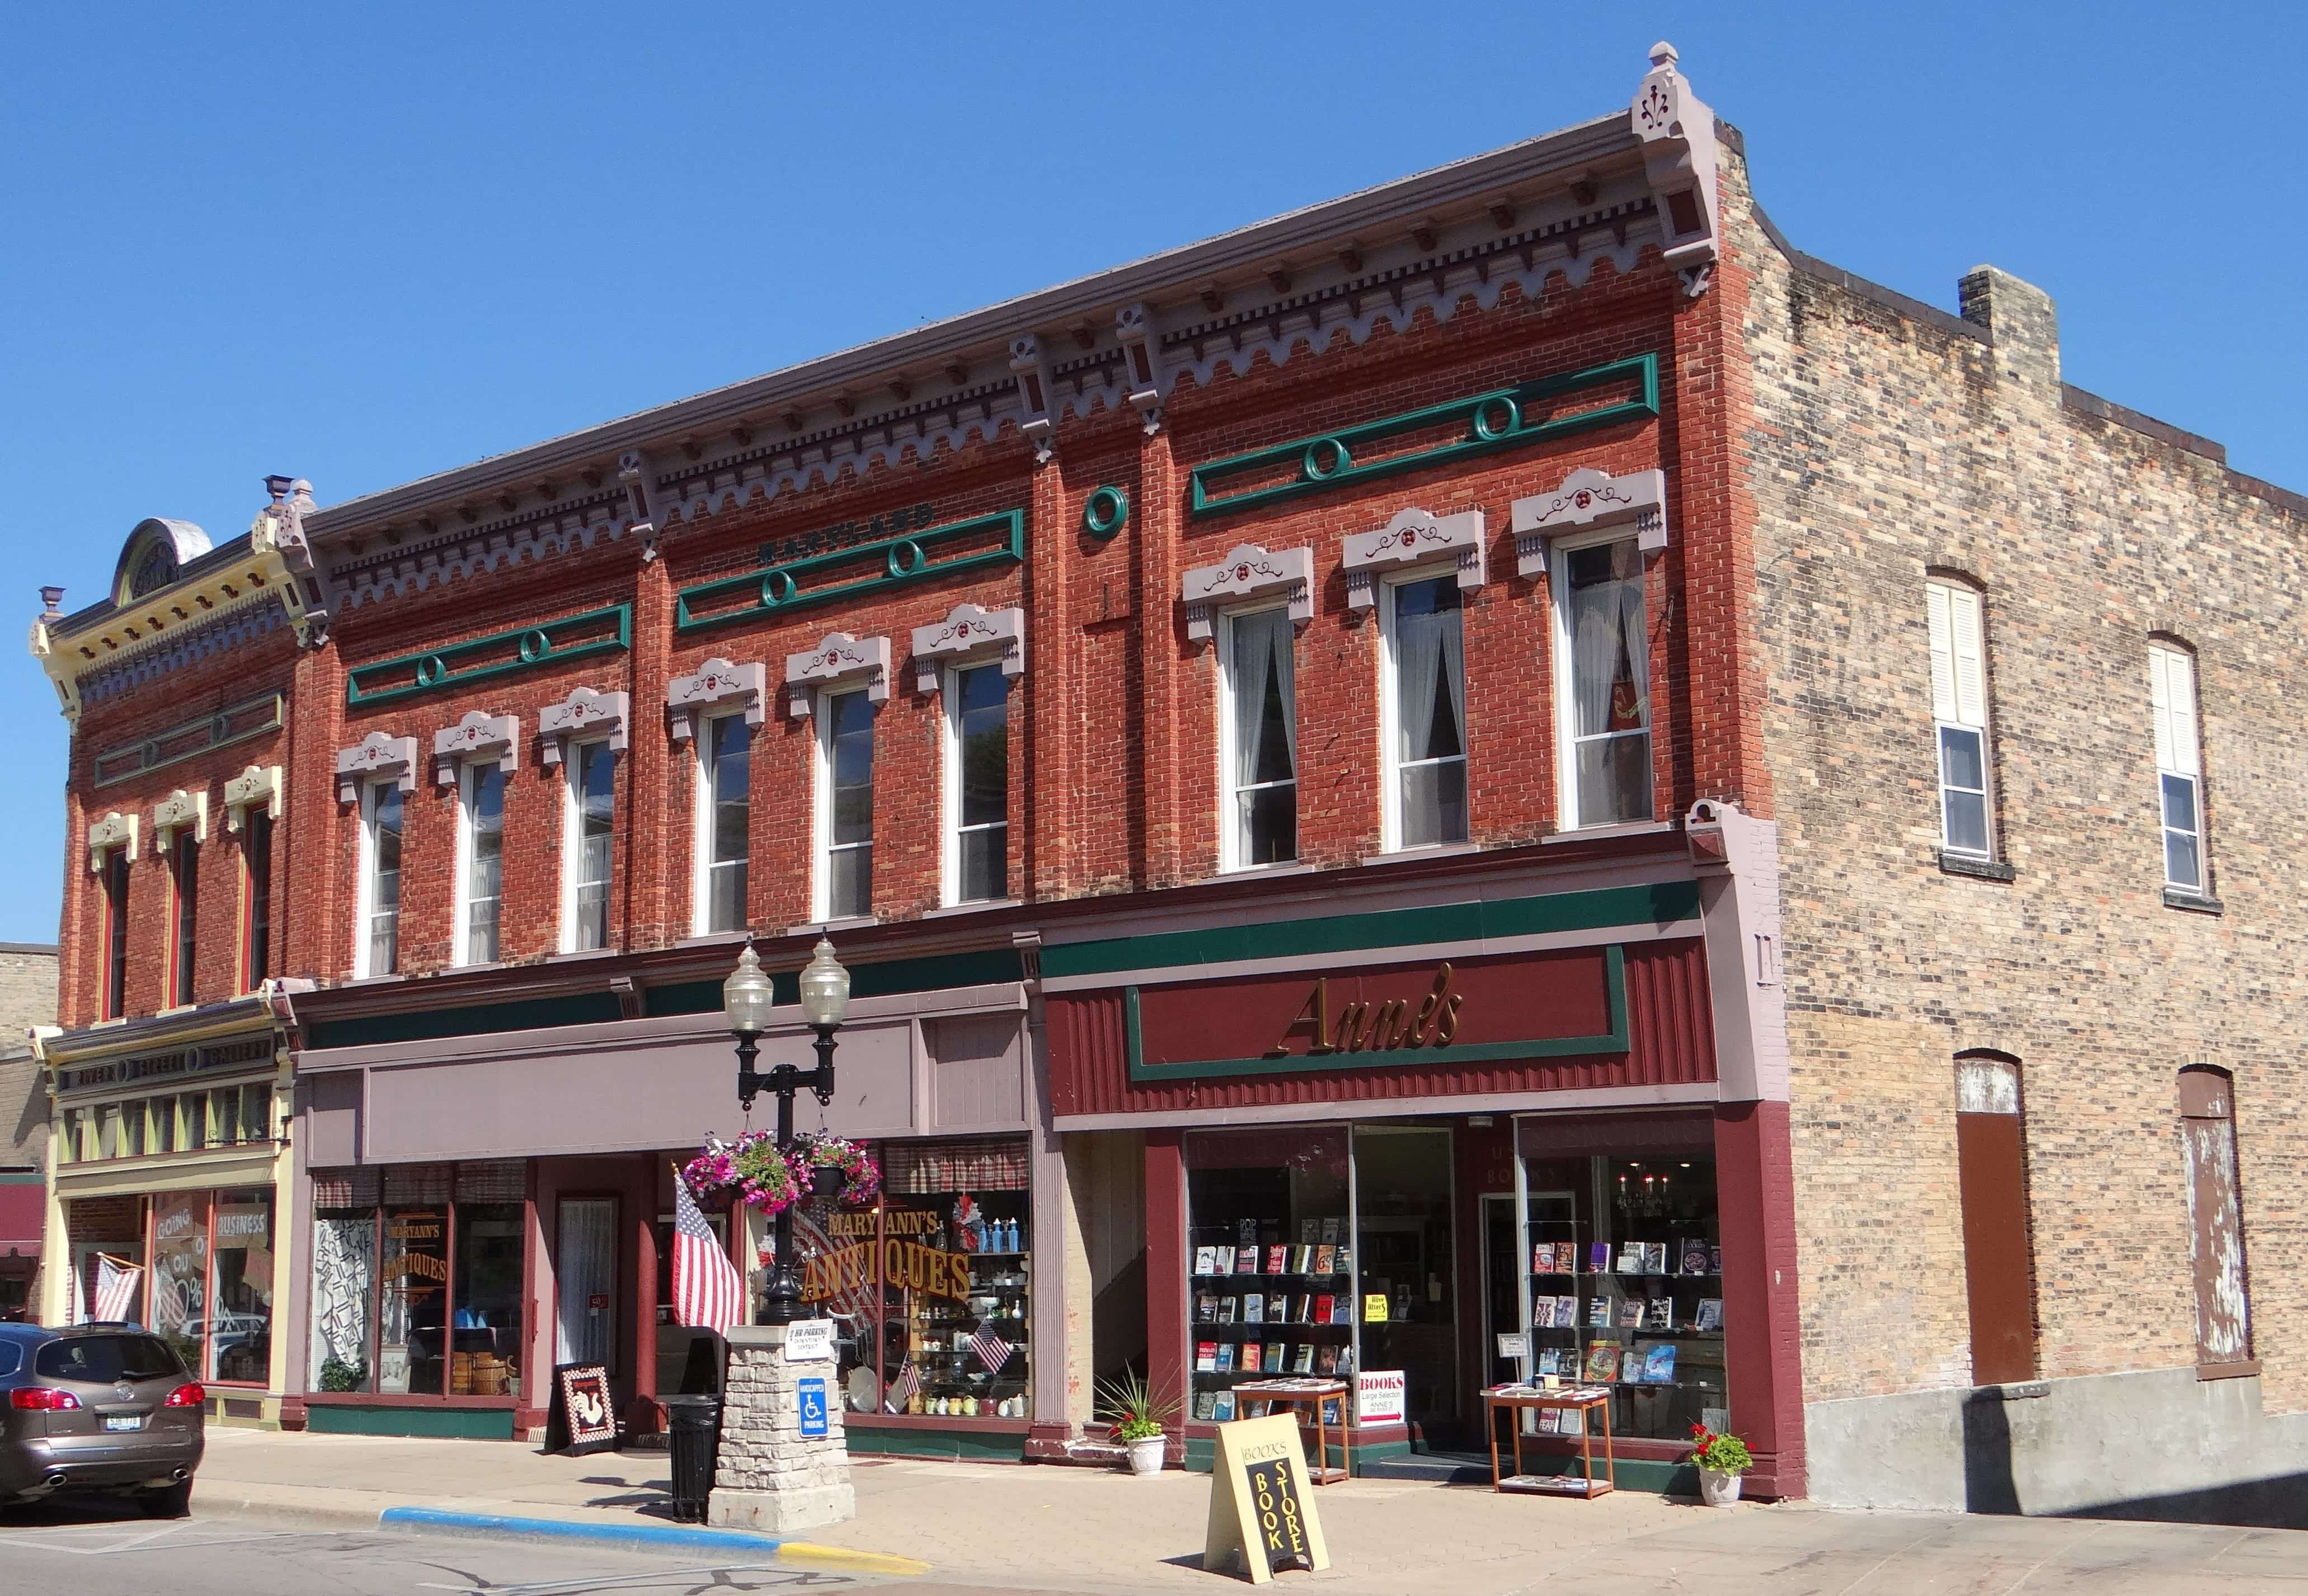 A row of two-story brick storefronts with a historic, small-town look.